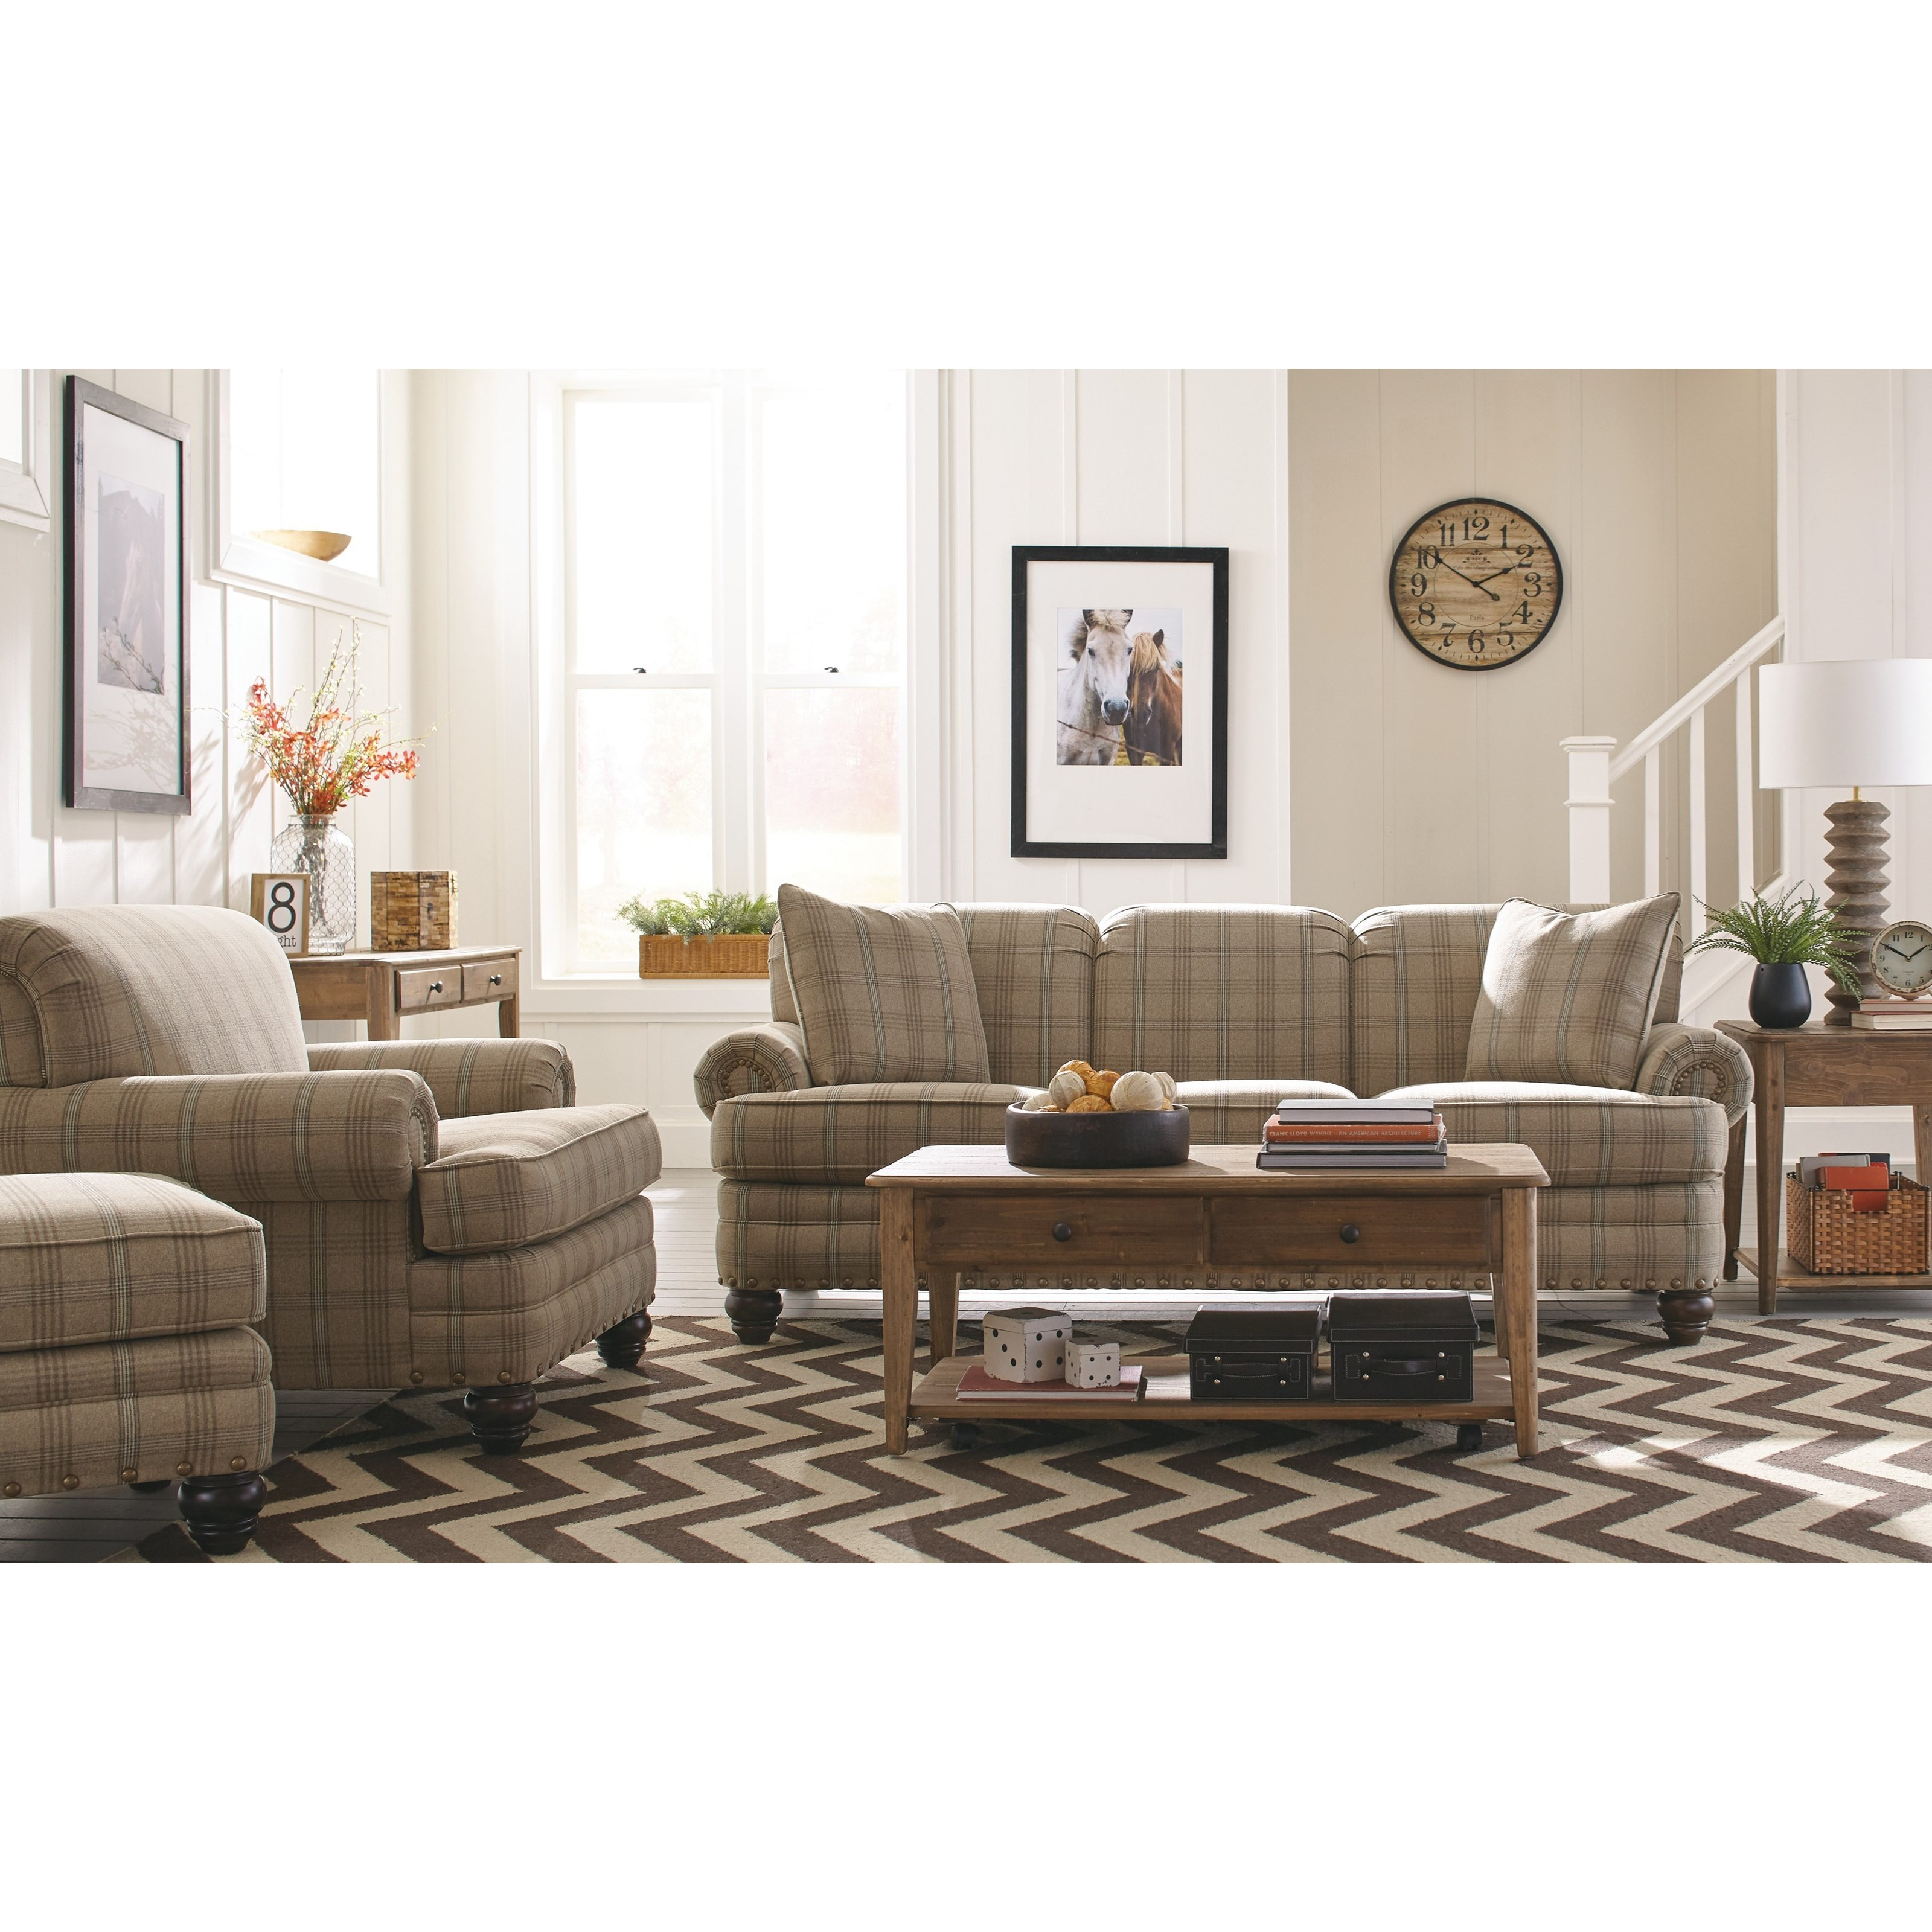 7281 Living Room Group by Hickory Craft at Godby Home Furnishings